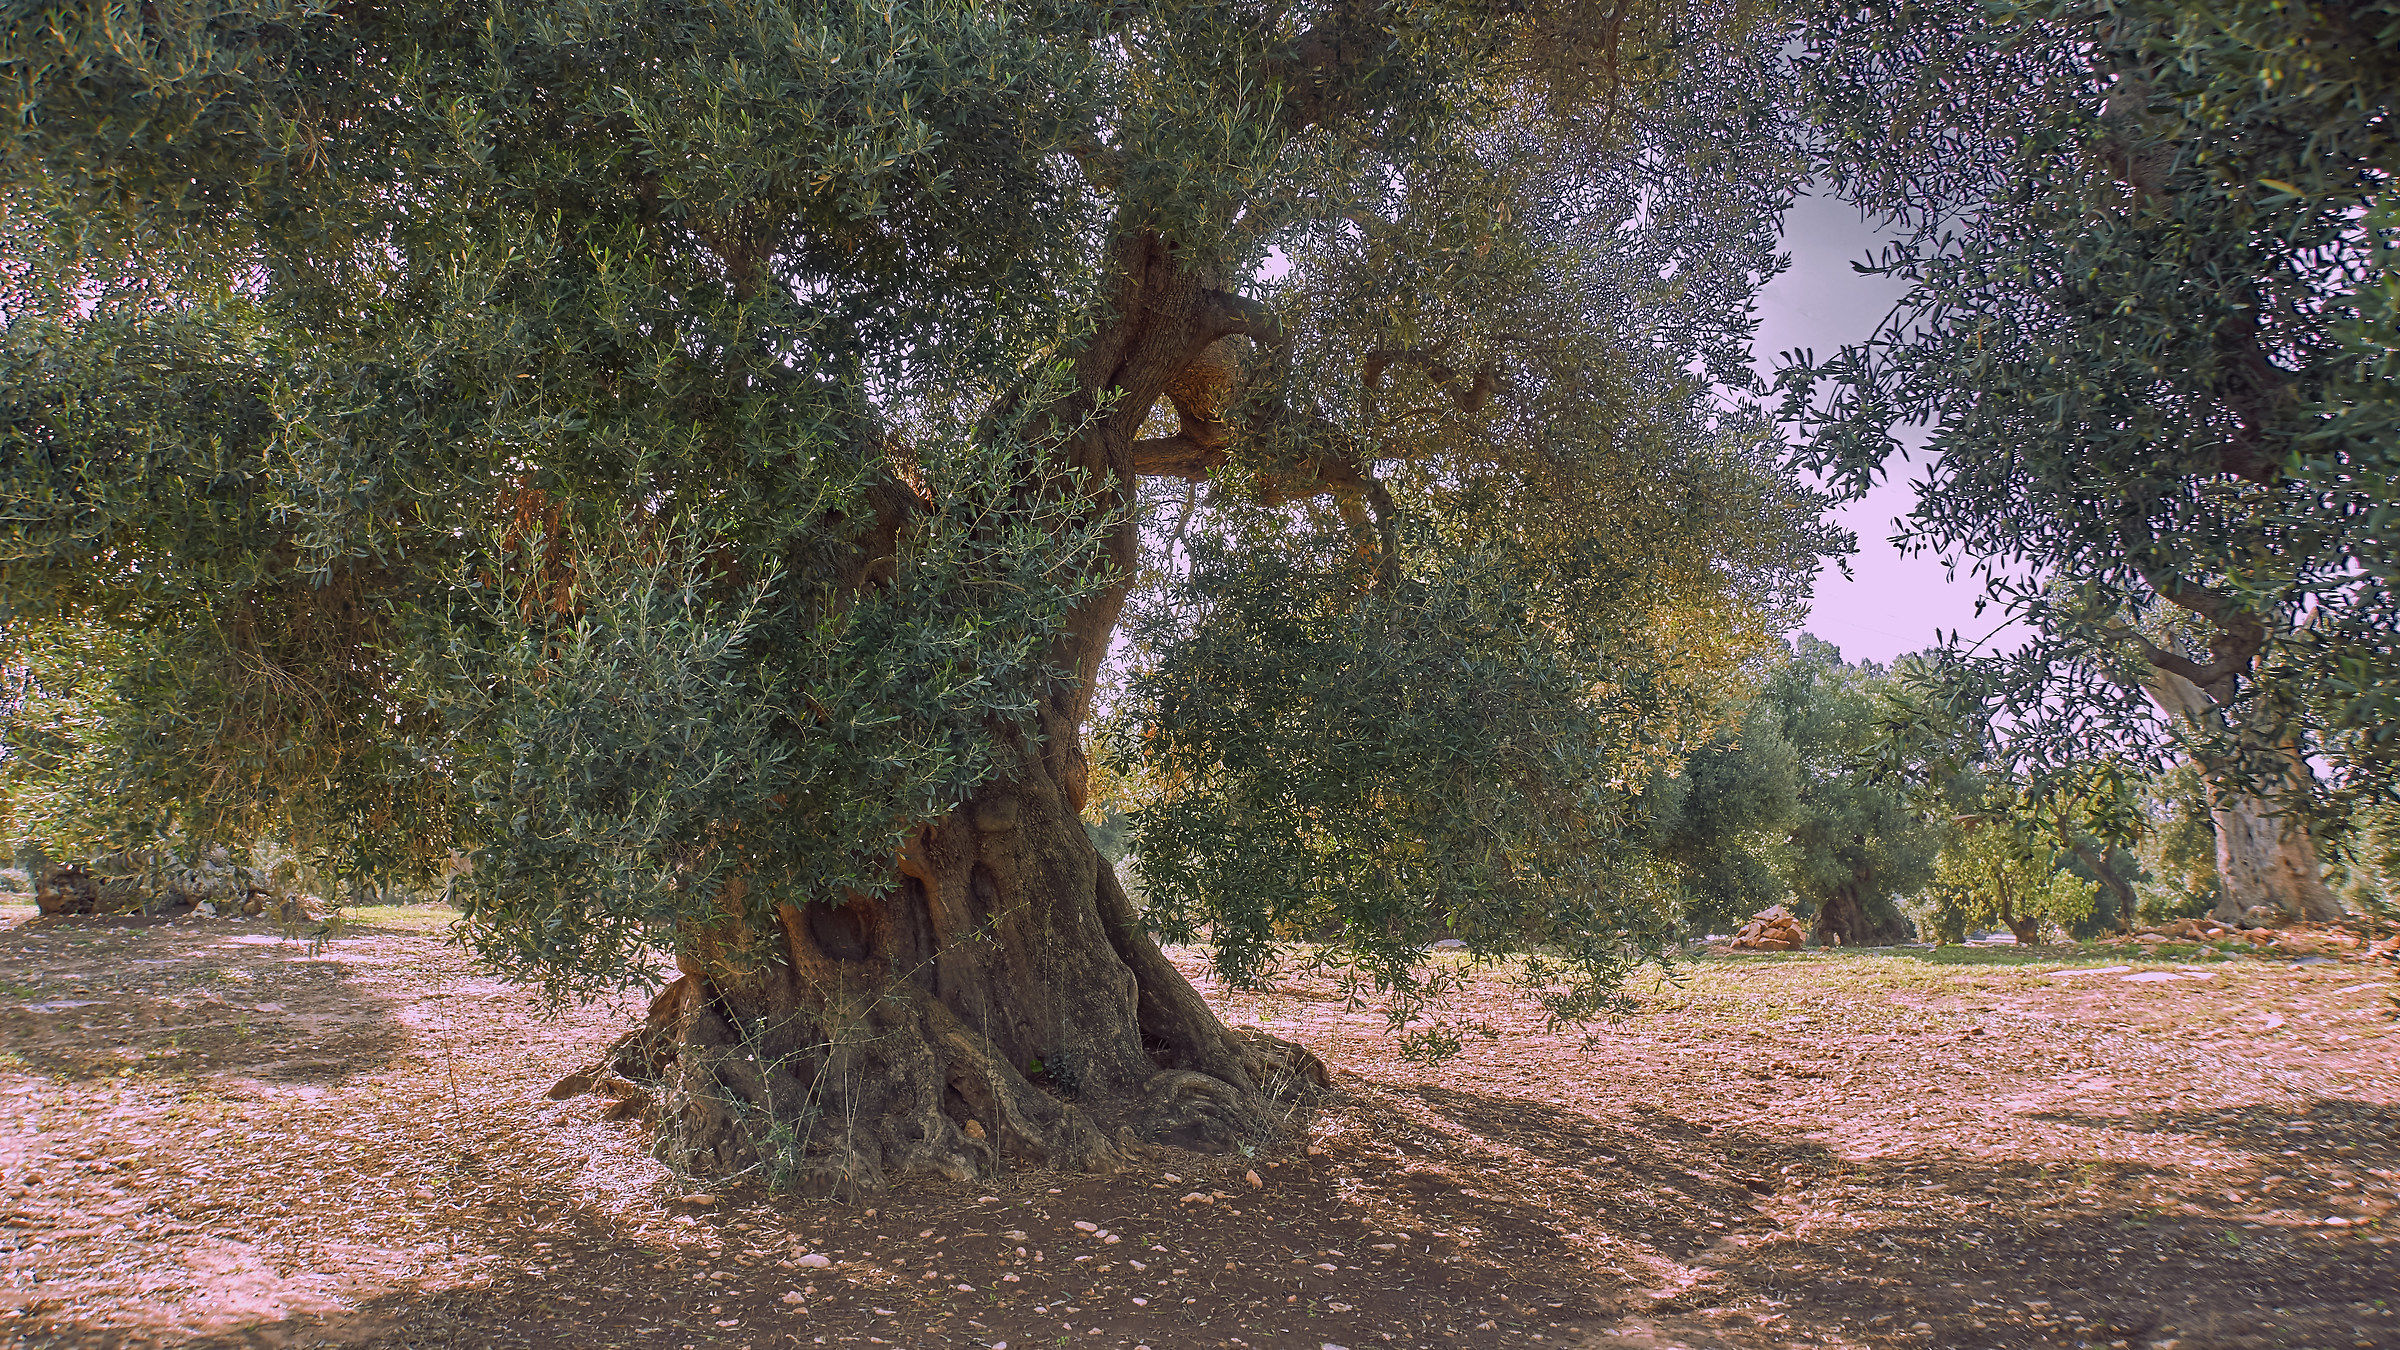 The old olive tree...